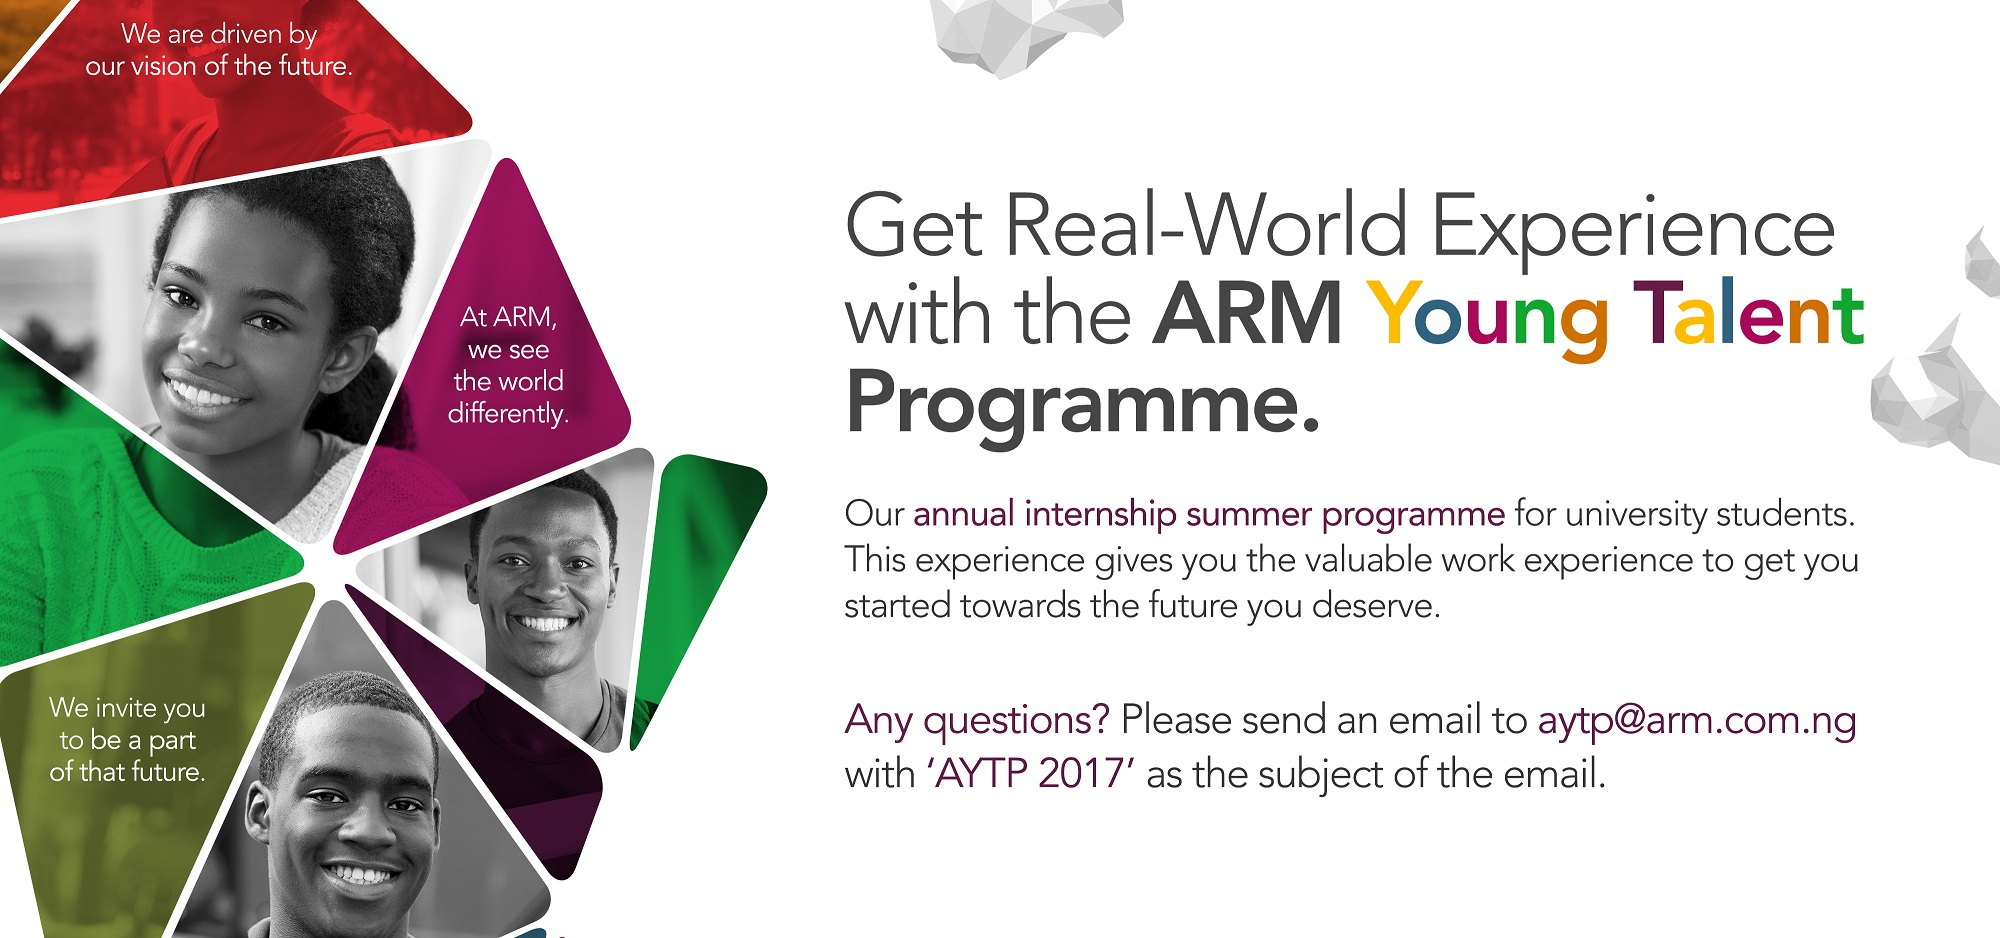 ARM Young Talent Programme (AYTP) 2017